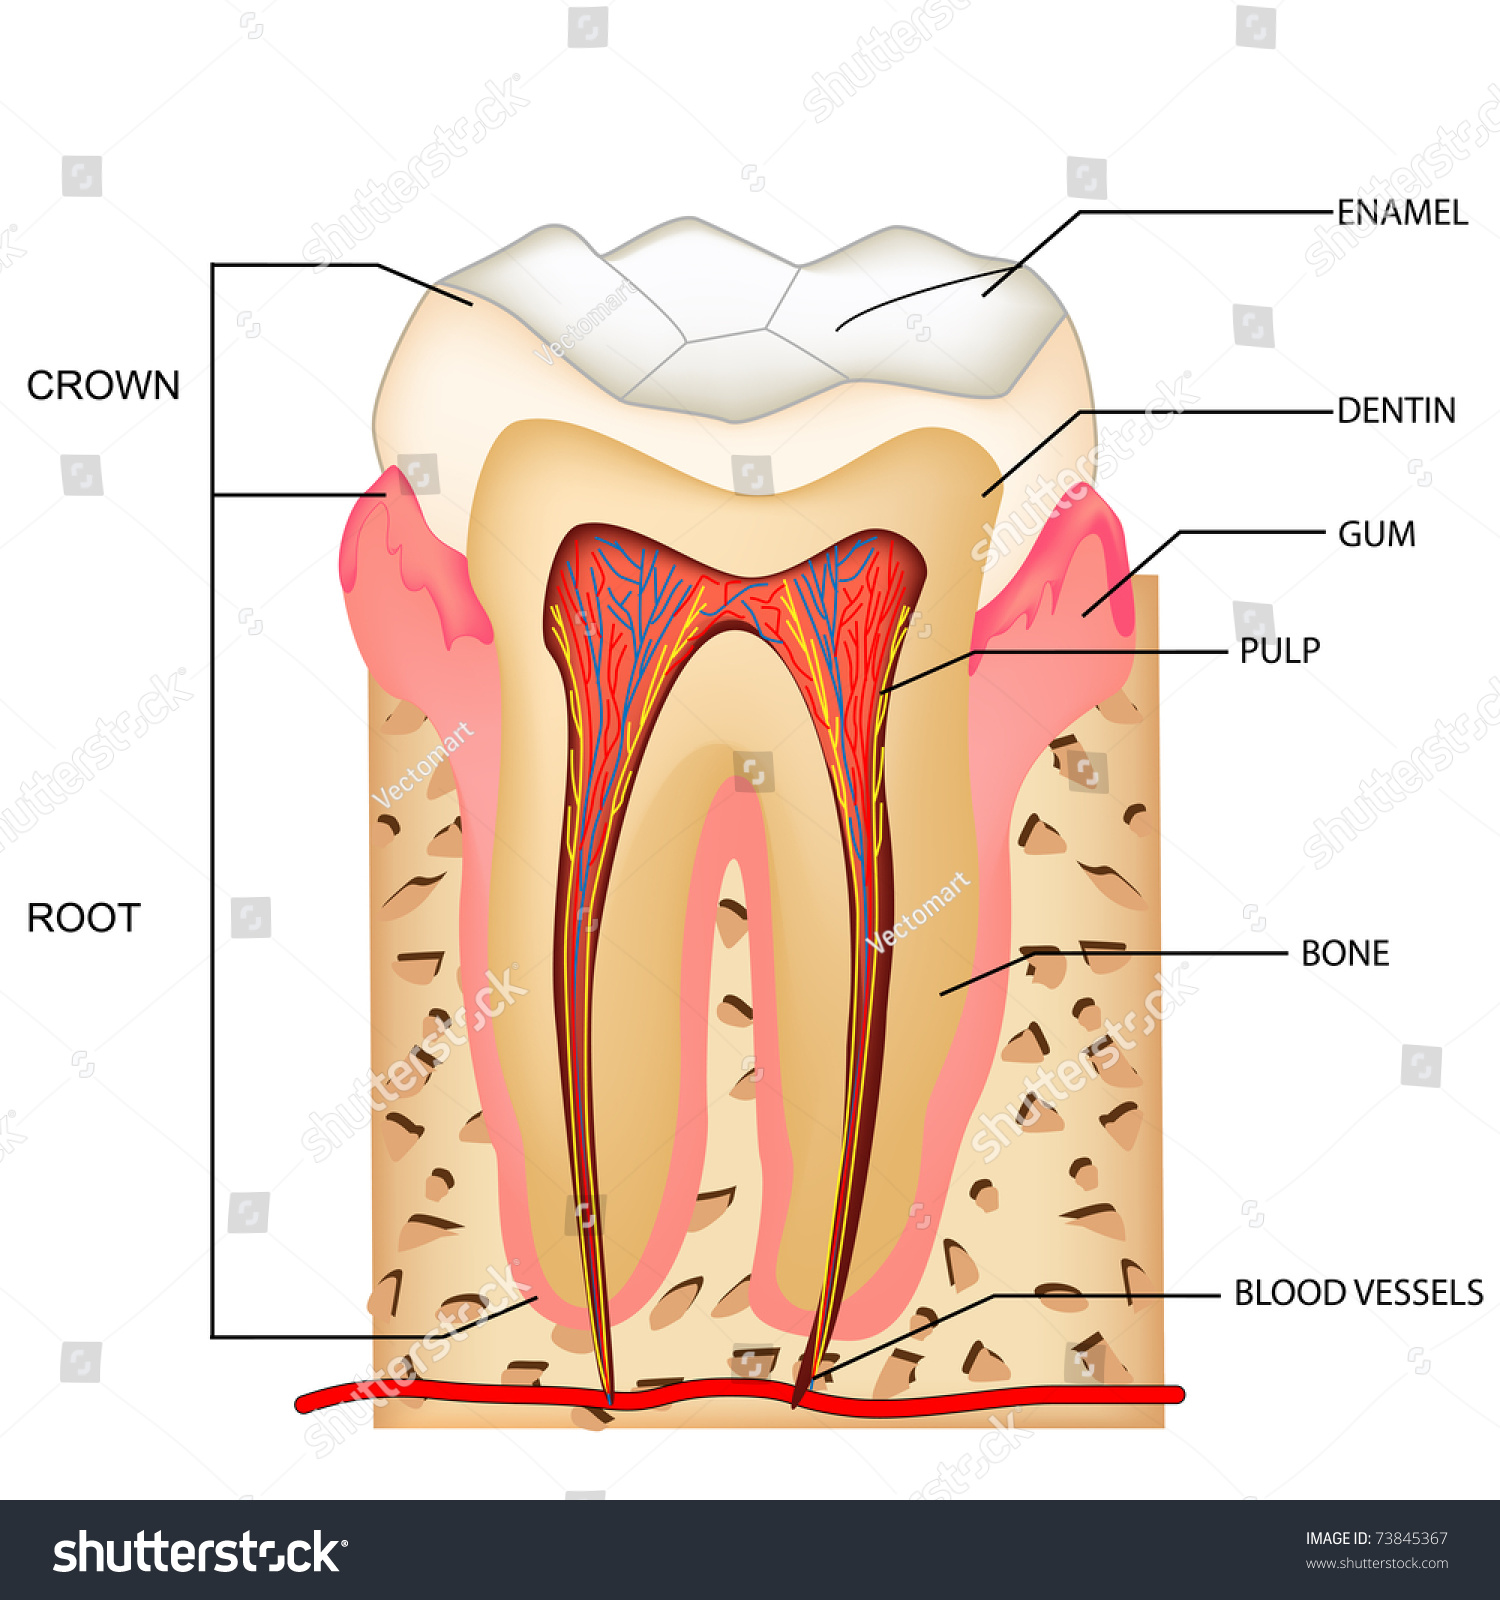 tooth diagram with label immersion heater wiring illustration of anatomy teeth labeling 73845367